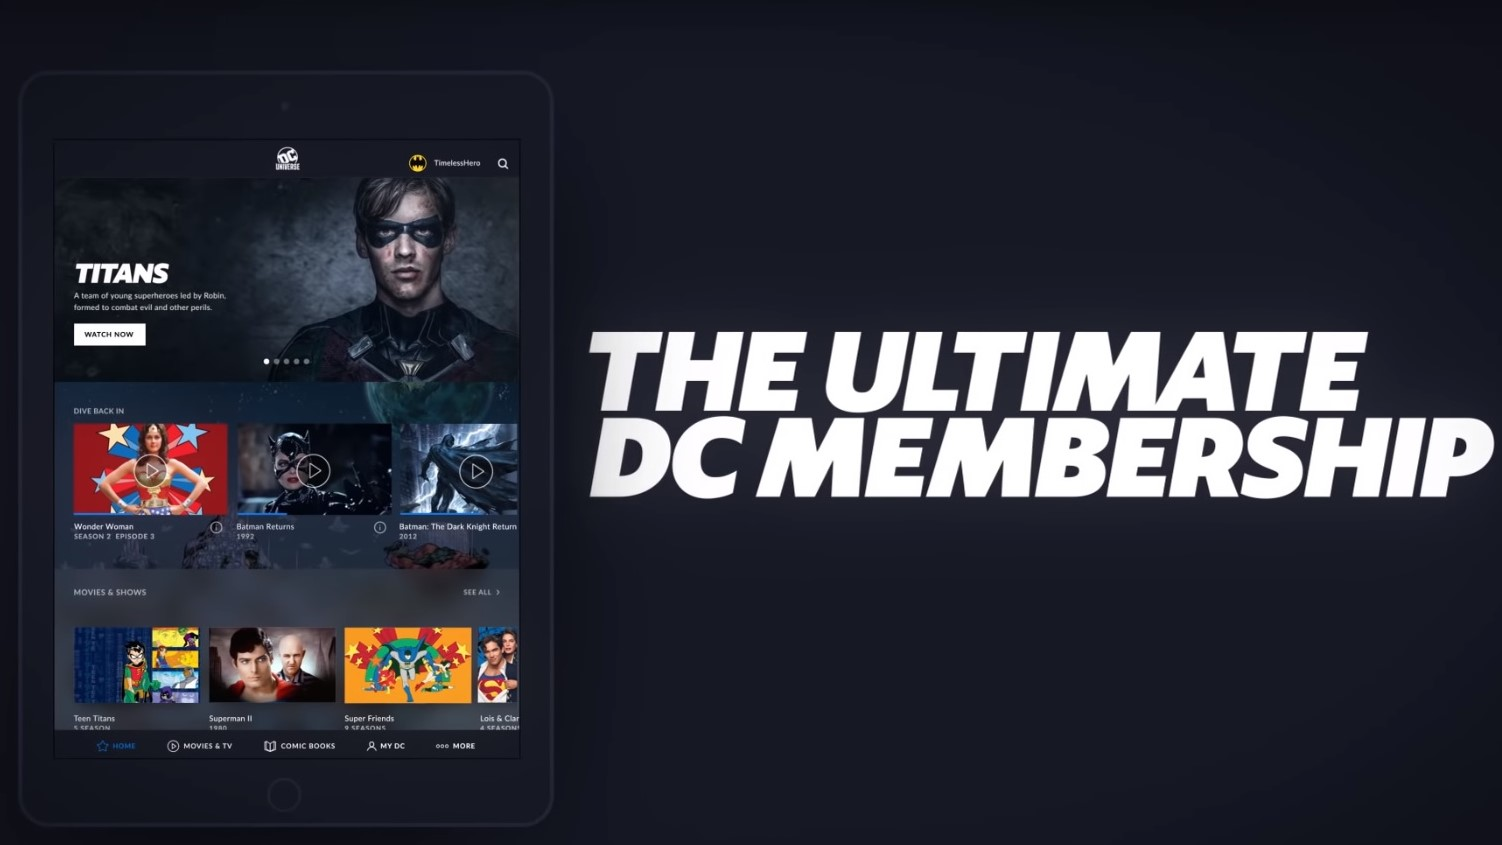 DC Universe: DC's new TV and comic book